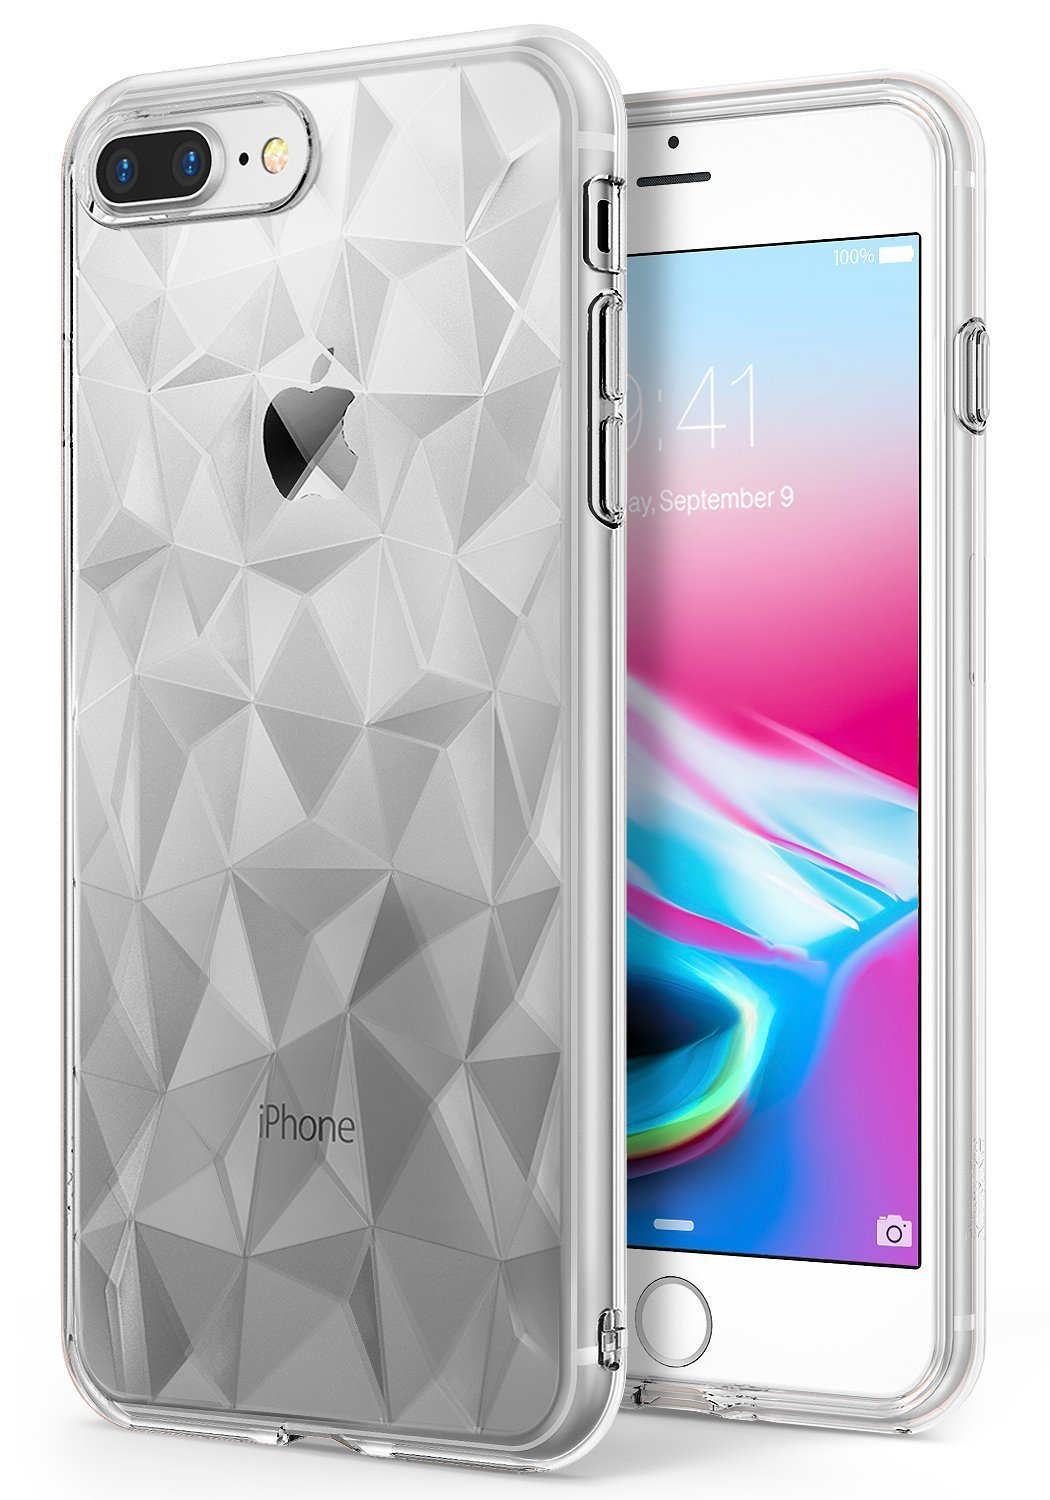 Clear Shockproof Case Prism Design For Male Female For Oppo A3S / A5  Shockproof, Shatterproof Glass,Protects Your Phone From Dirt,Dust,Drops &  Scratch